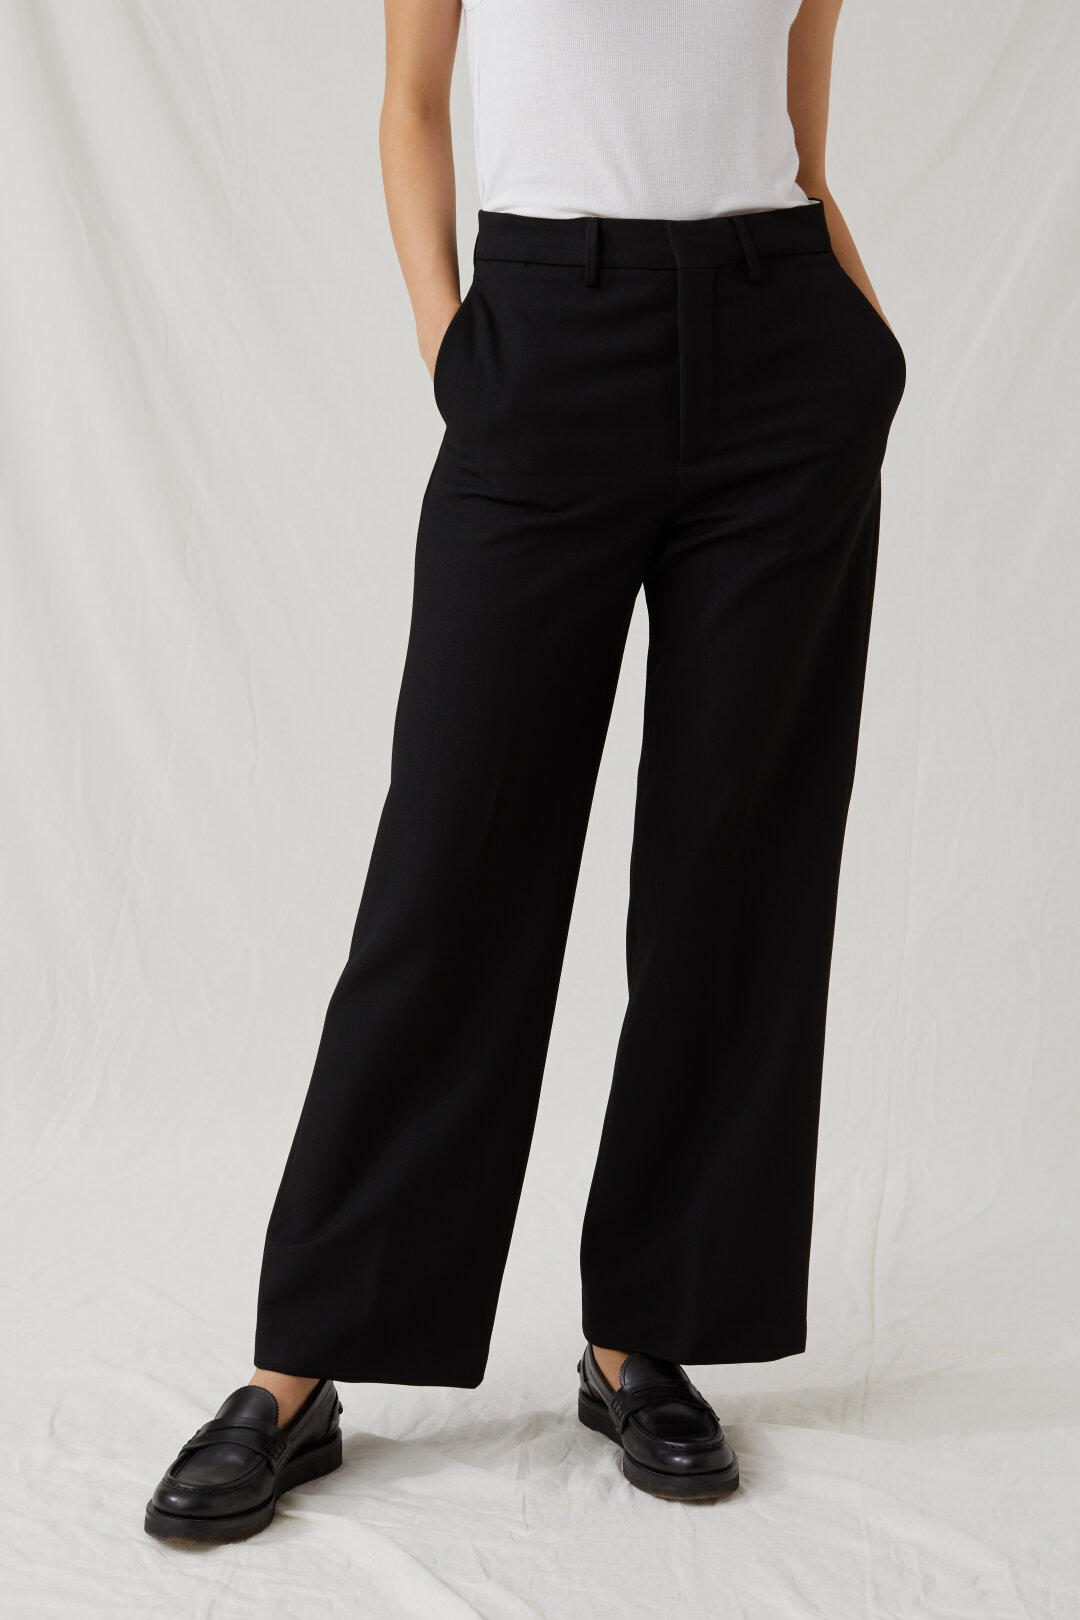 Blaire Twill Pants